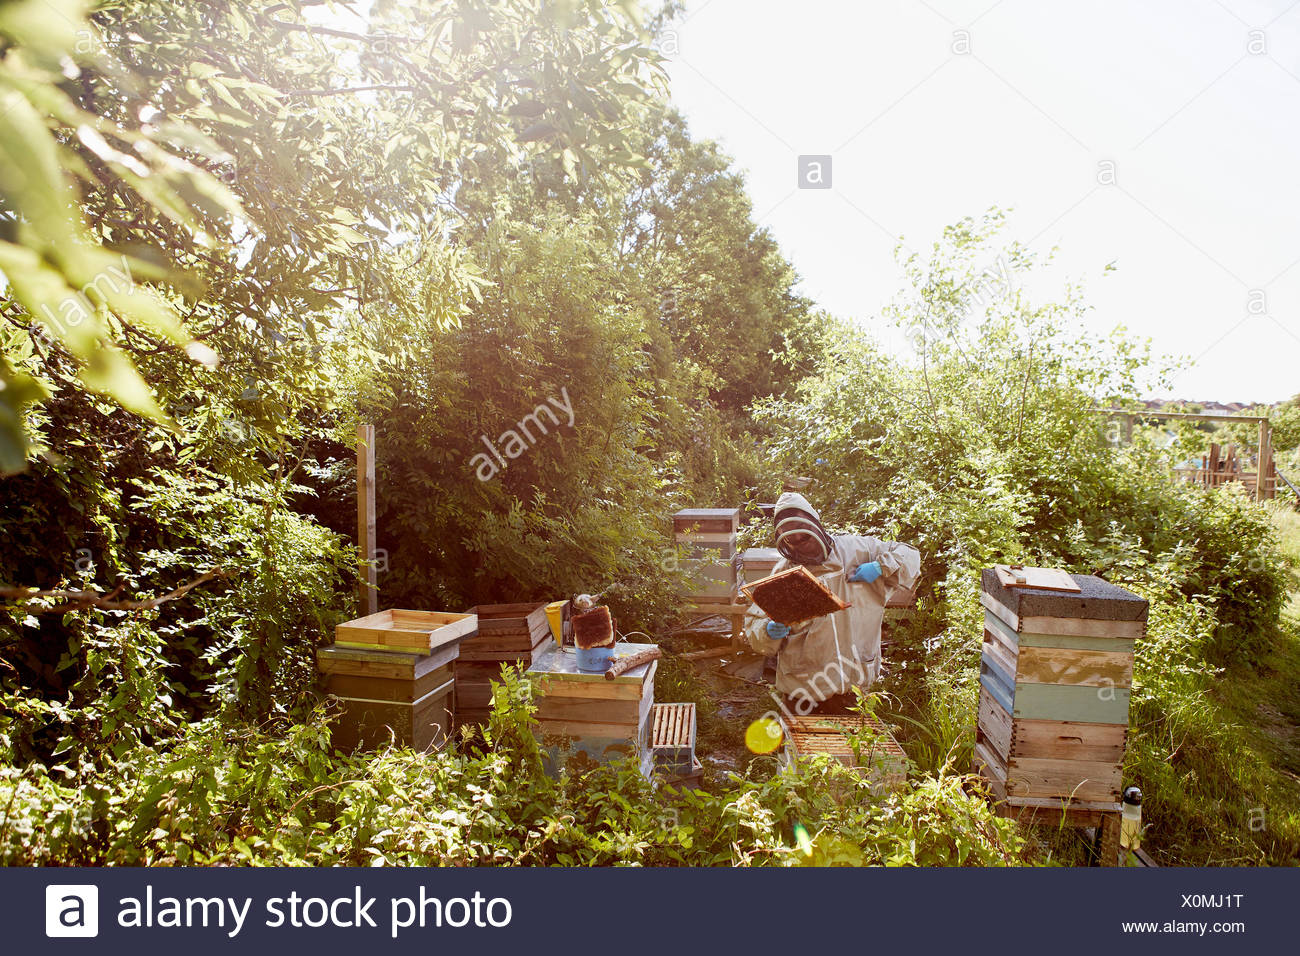 A beekeeper in a protective suit and face covering inspecting the frames in his bee hives. - Stock Image